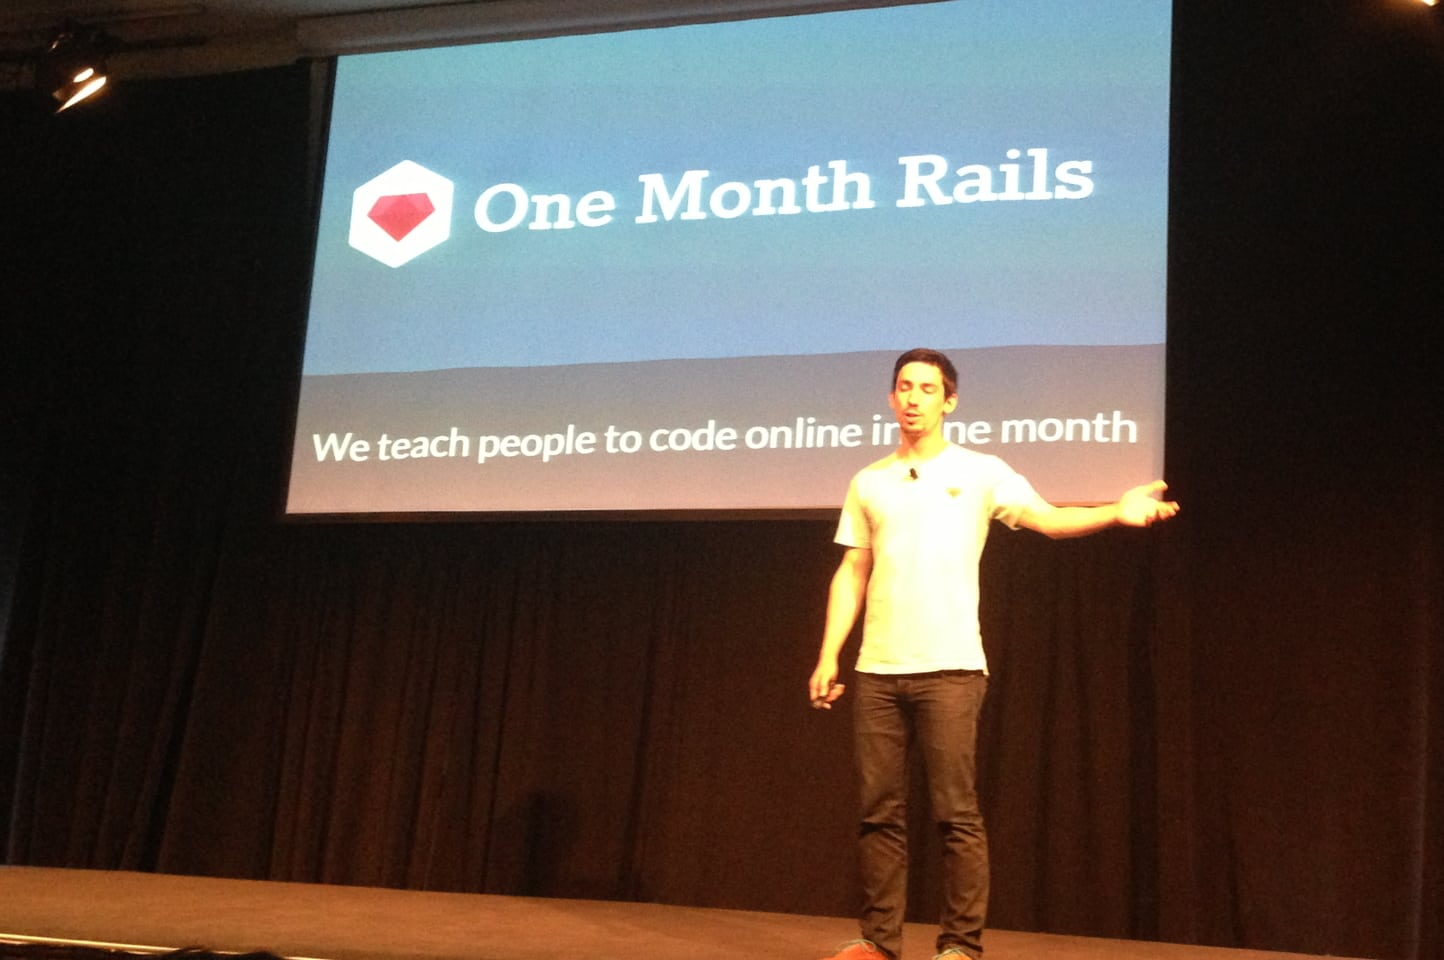 One Month Rails